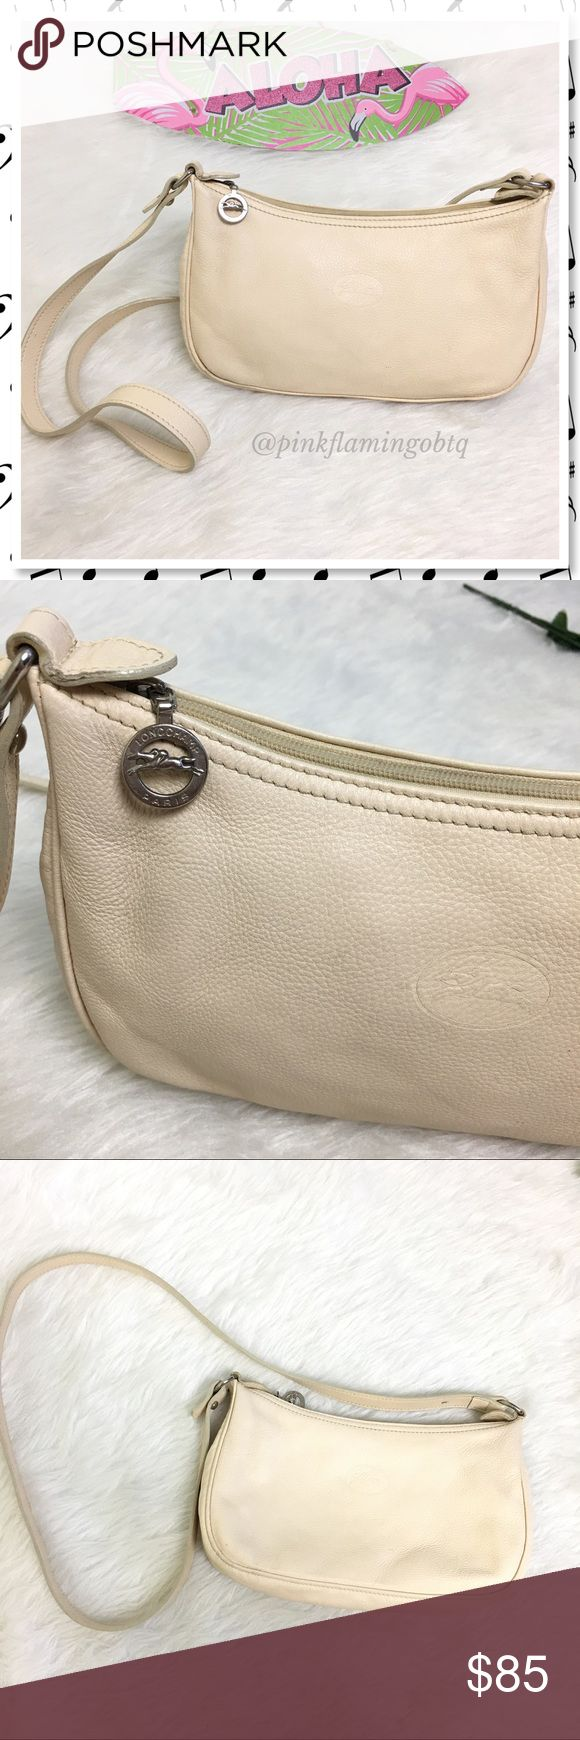 Vintage Longchamp Beige Pebbled Leather Crossbody Vintage Longchamp buff beige pebbled leather crossbody purse. One interior compartment with an open slip pouch to keep loose items separate. All lined in Longchamp fabric. Adjustable strap that can be worn crossbody or shoulder bag. Logo metal key fob zip pull. Beautiful vintage purse! Tiny flaws have been photographed and are not too noticeable considering the bags age. Perfect for any Longchamp collector or fan! Longchamp Bags Crossbody…